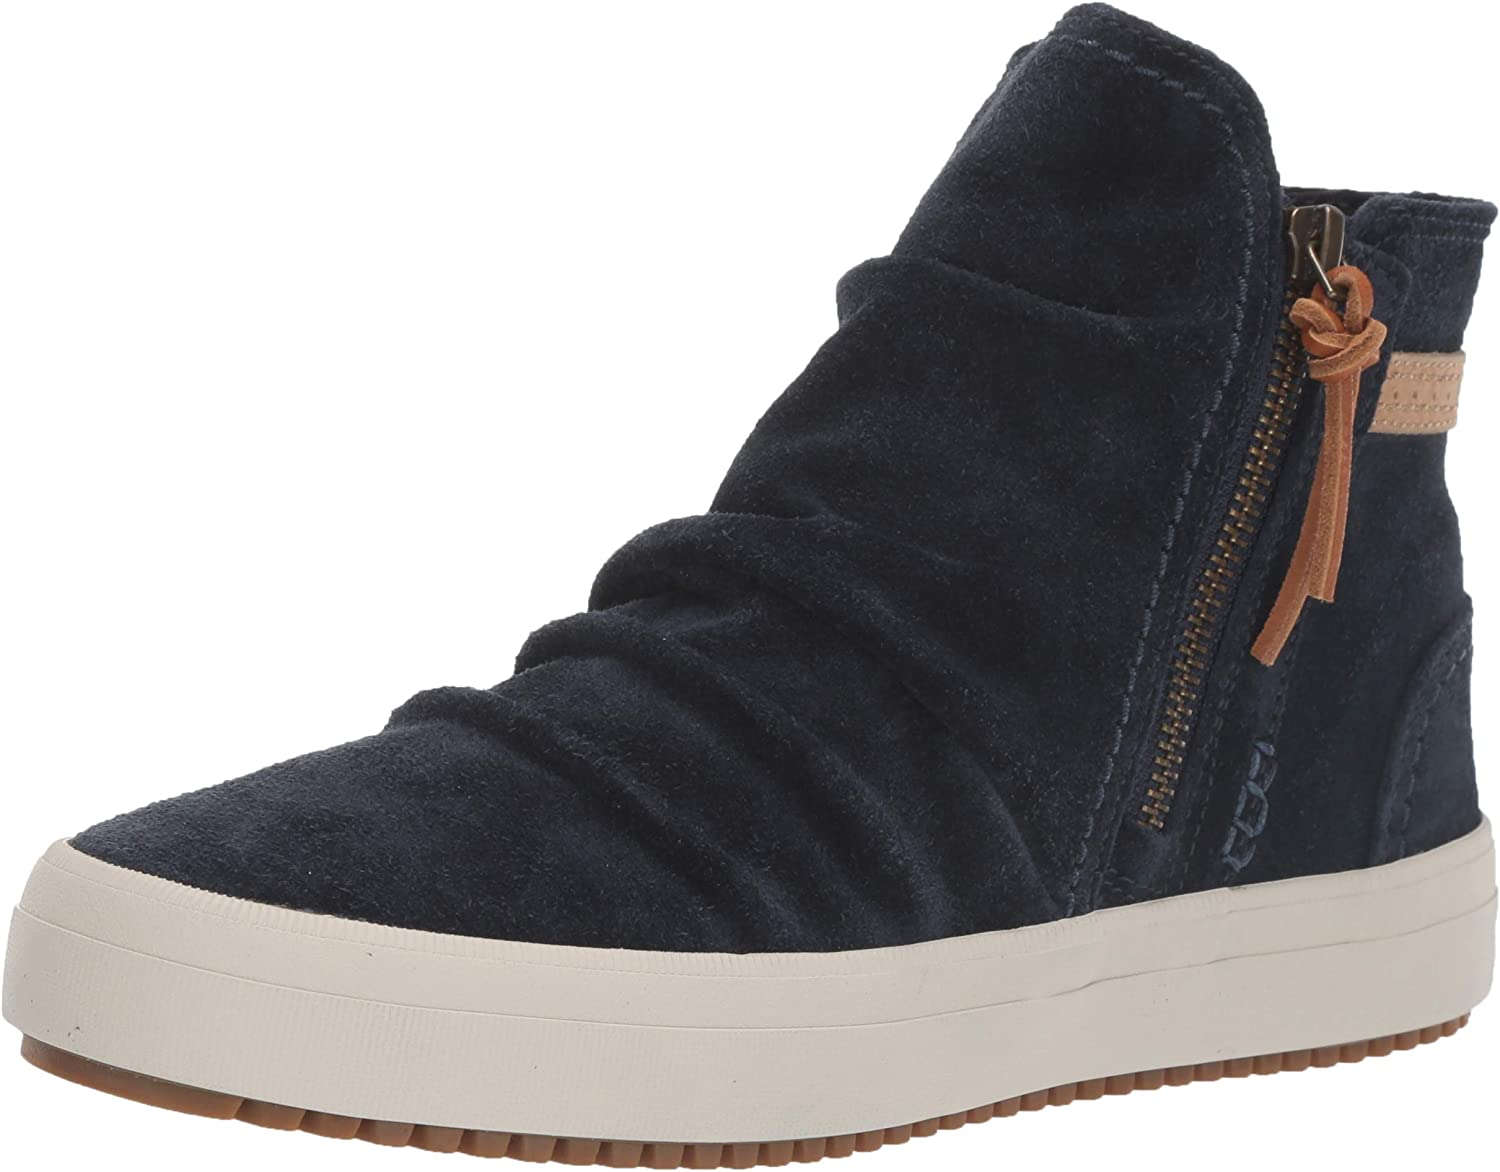 SPERRY Women's Crest Lug Zone Suede Boots